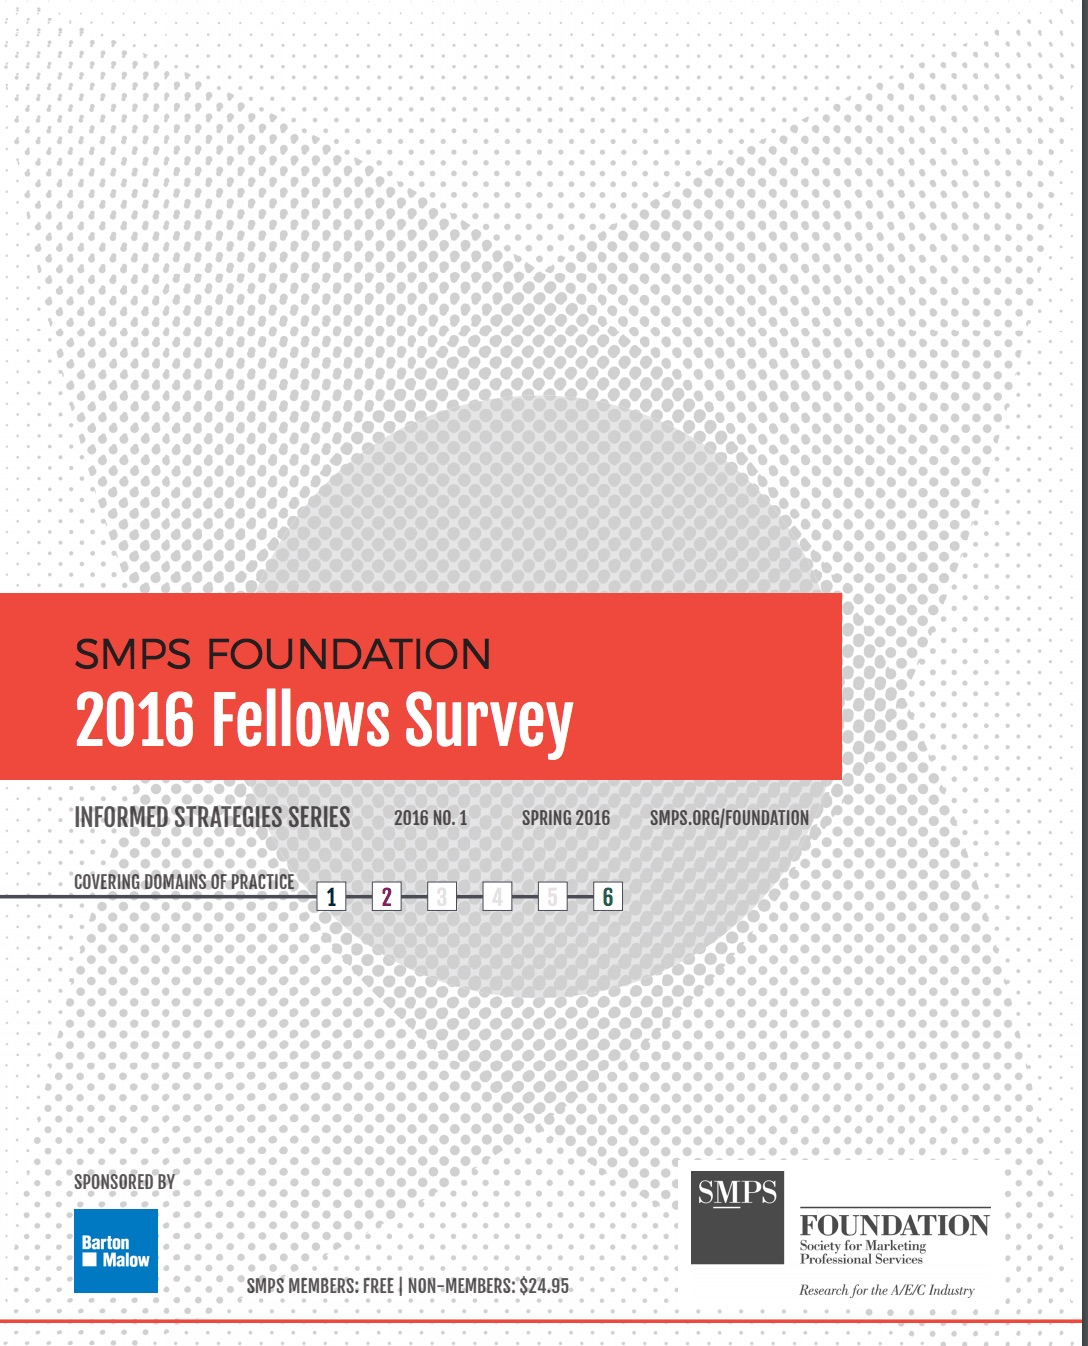 SMPS college fellows survey